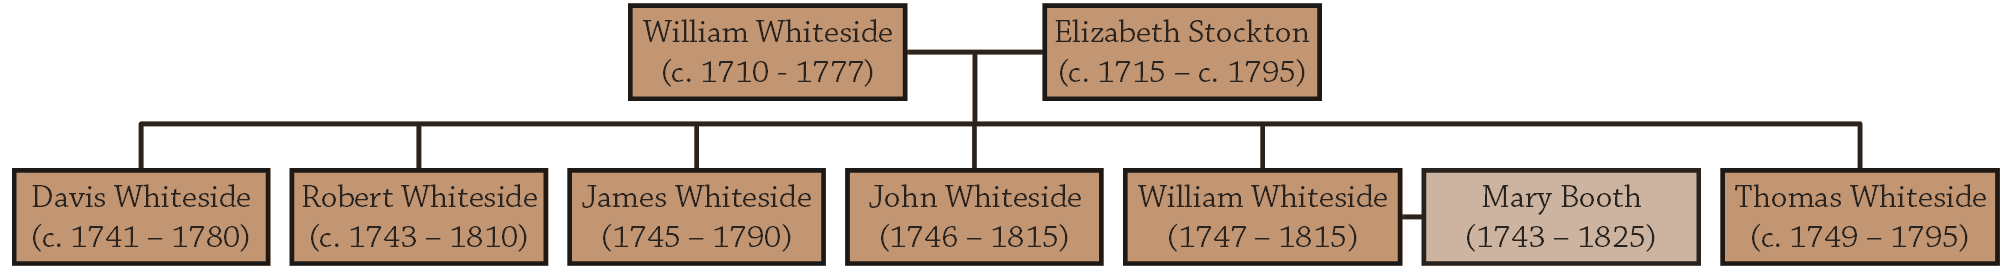 Family Tree of the first generation of Whitesides